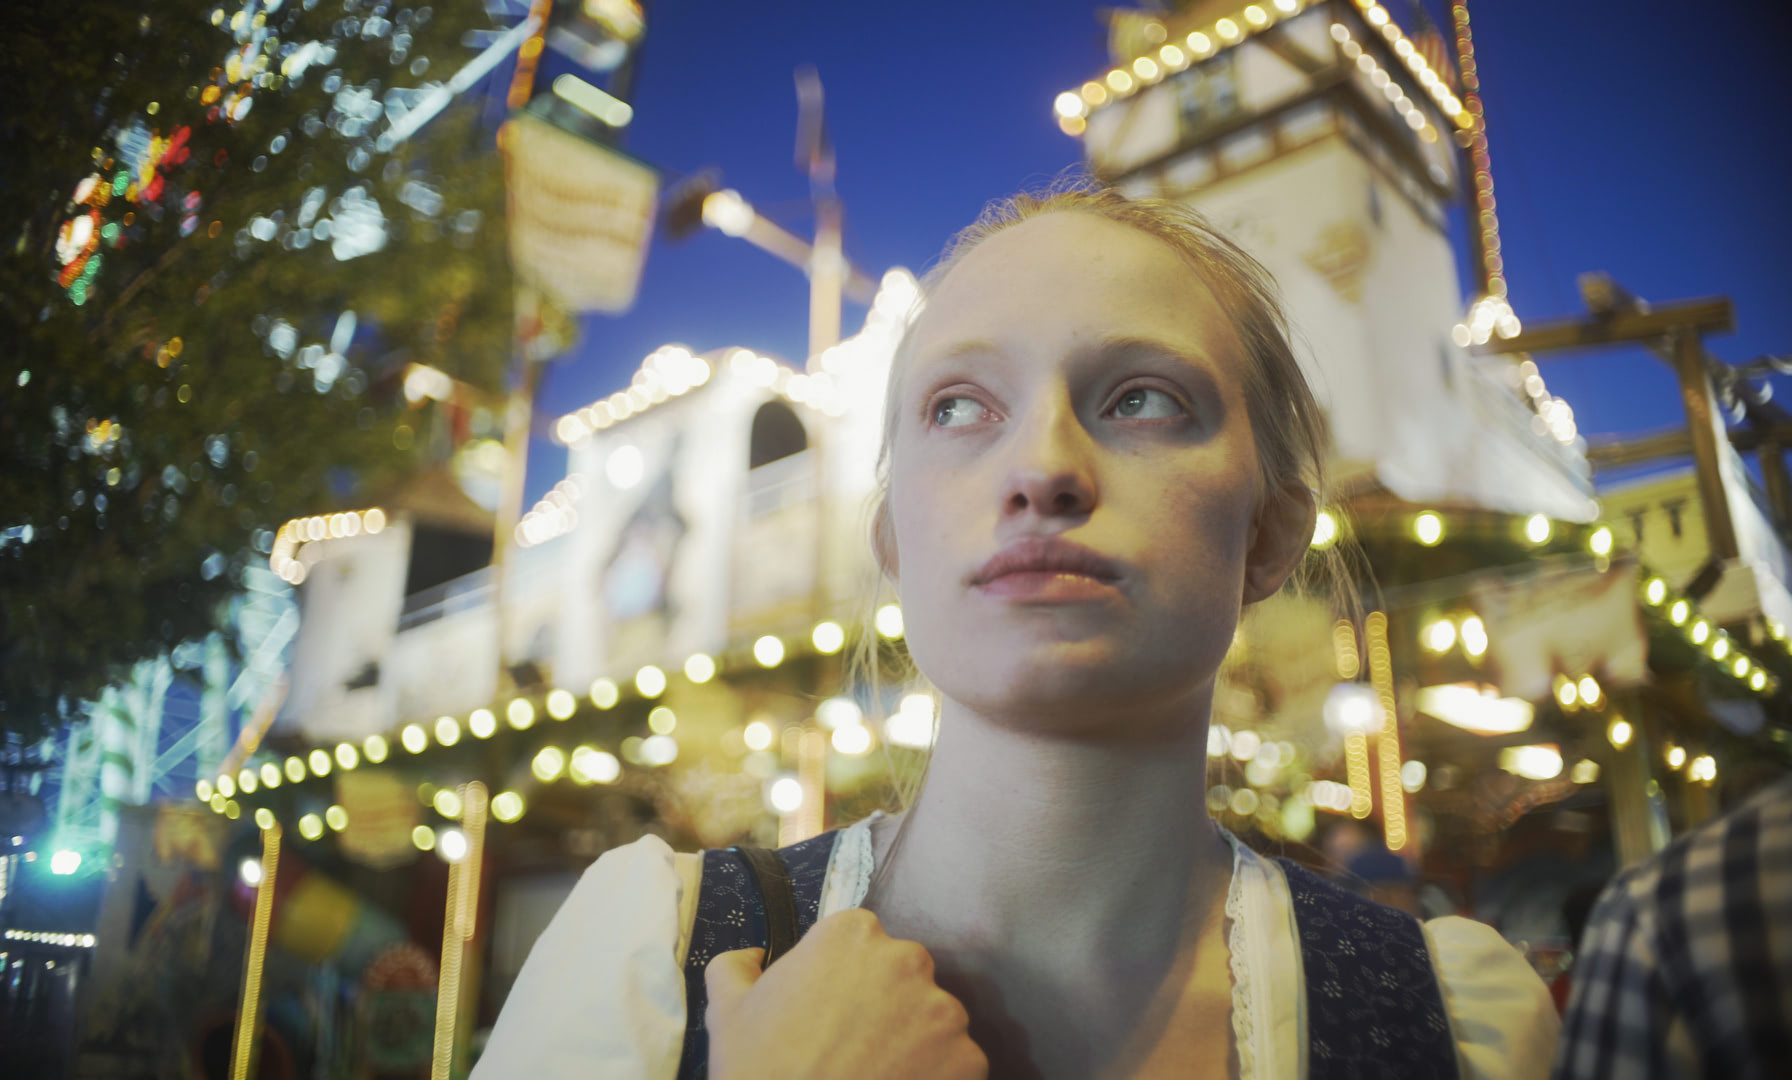 A young woman at an amusement park at night with colorful lights.